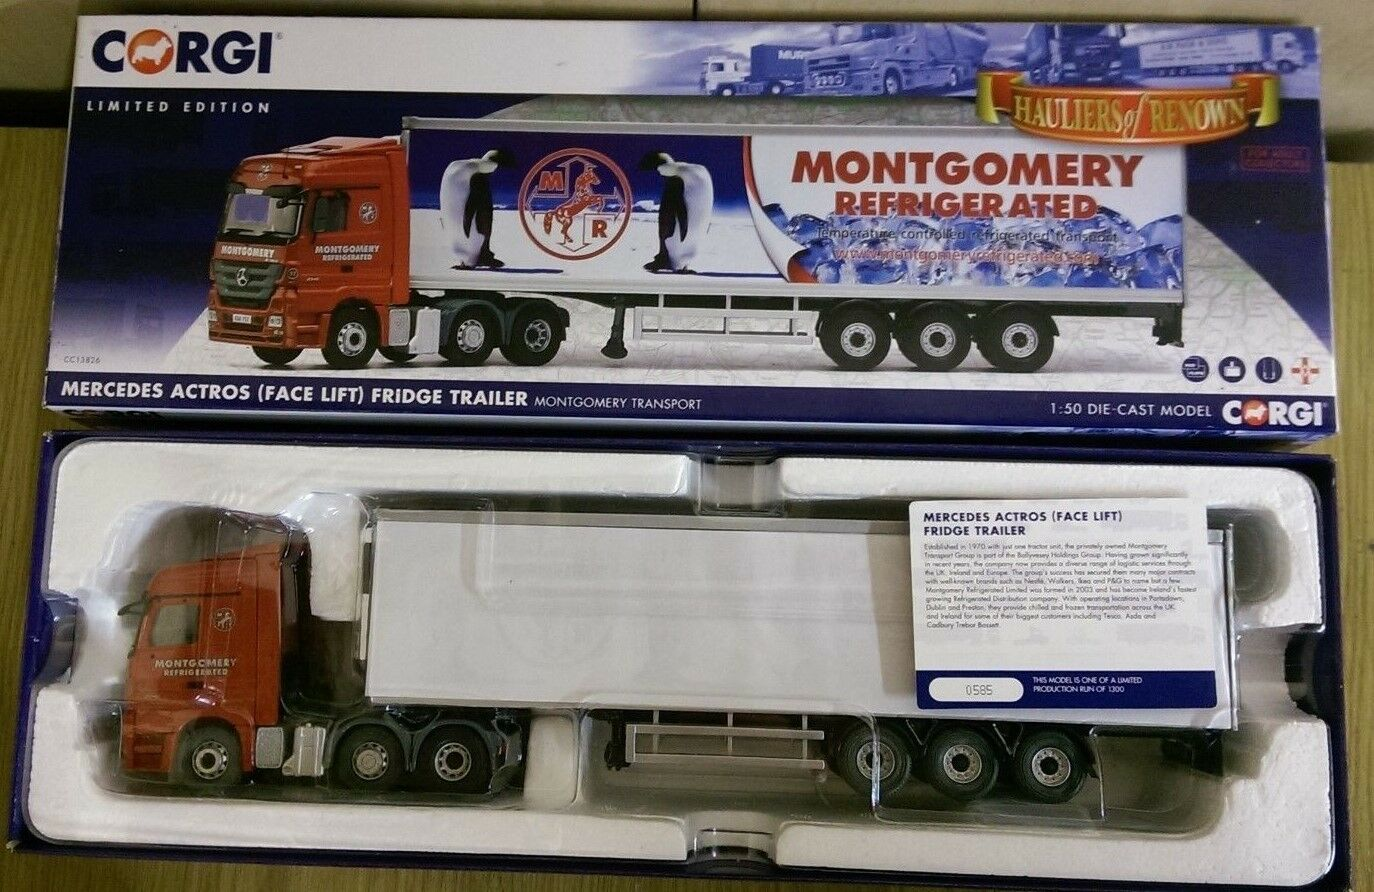 Corgi CC13826 MB Actros Facelift Fridge Trailer Montgomery LTD ED. 585 de 1300